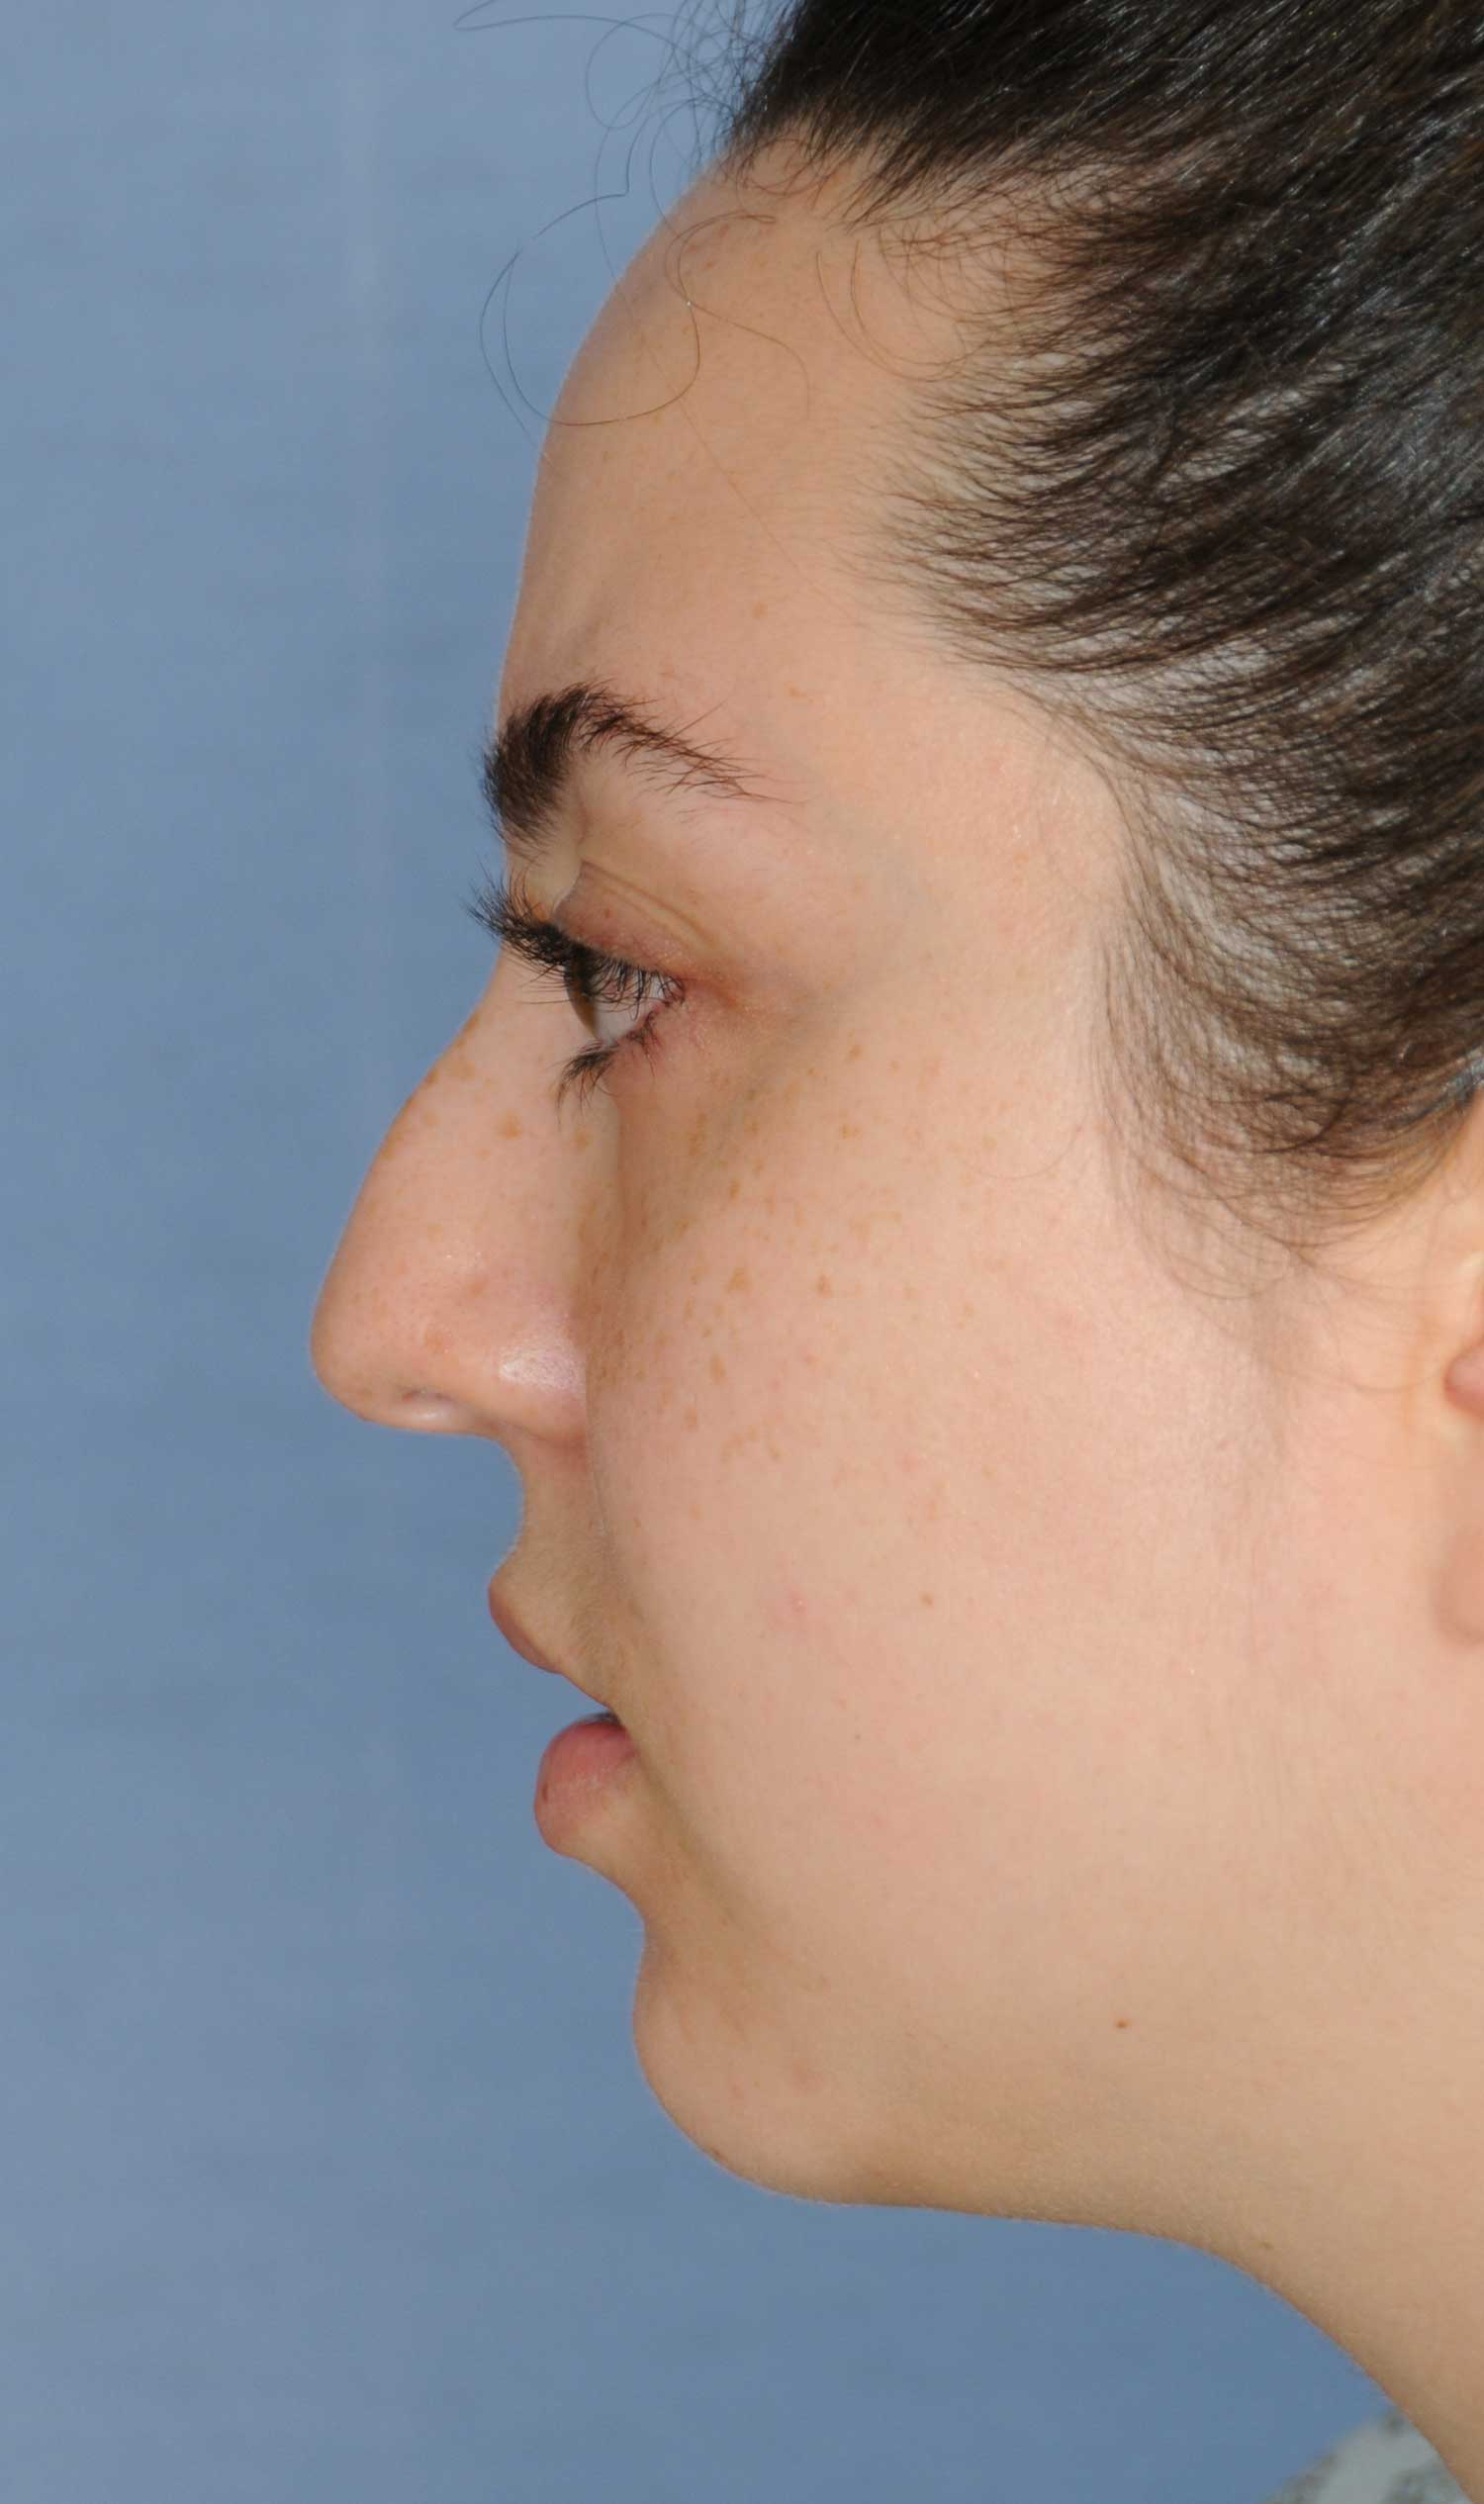 Rhinoplasty for a Bulbous Nasal Tip, Prominent Nasal Bridge, Short Nose / Columella and Lip Fat Transfer for Small Thin Lateral Upper Outer Lips Before Left Profile View